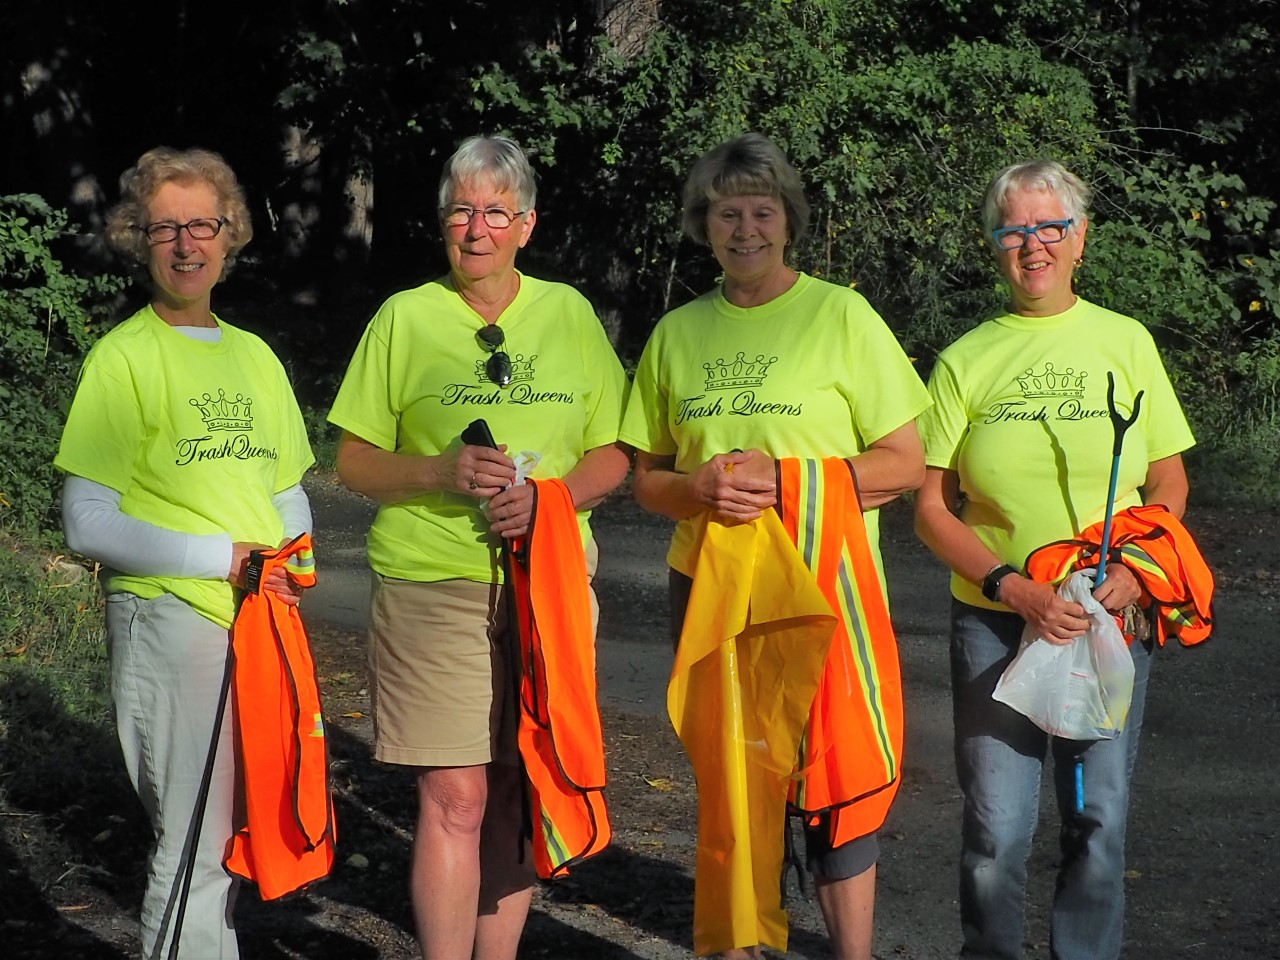 """Meet the """"Trash Queens"""": Leading the Way in Litter Cleanup on Their Daily Walk"""